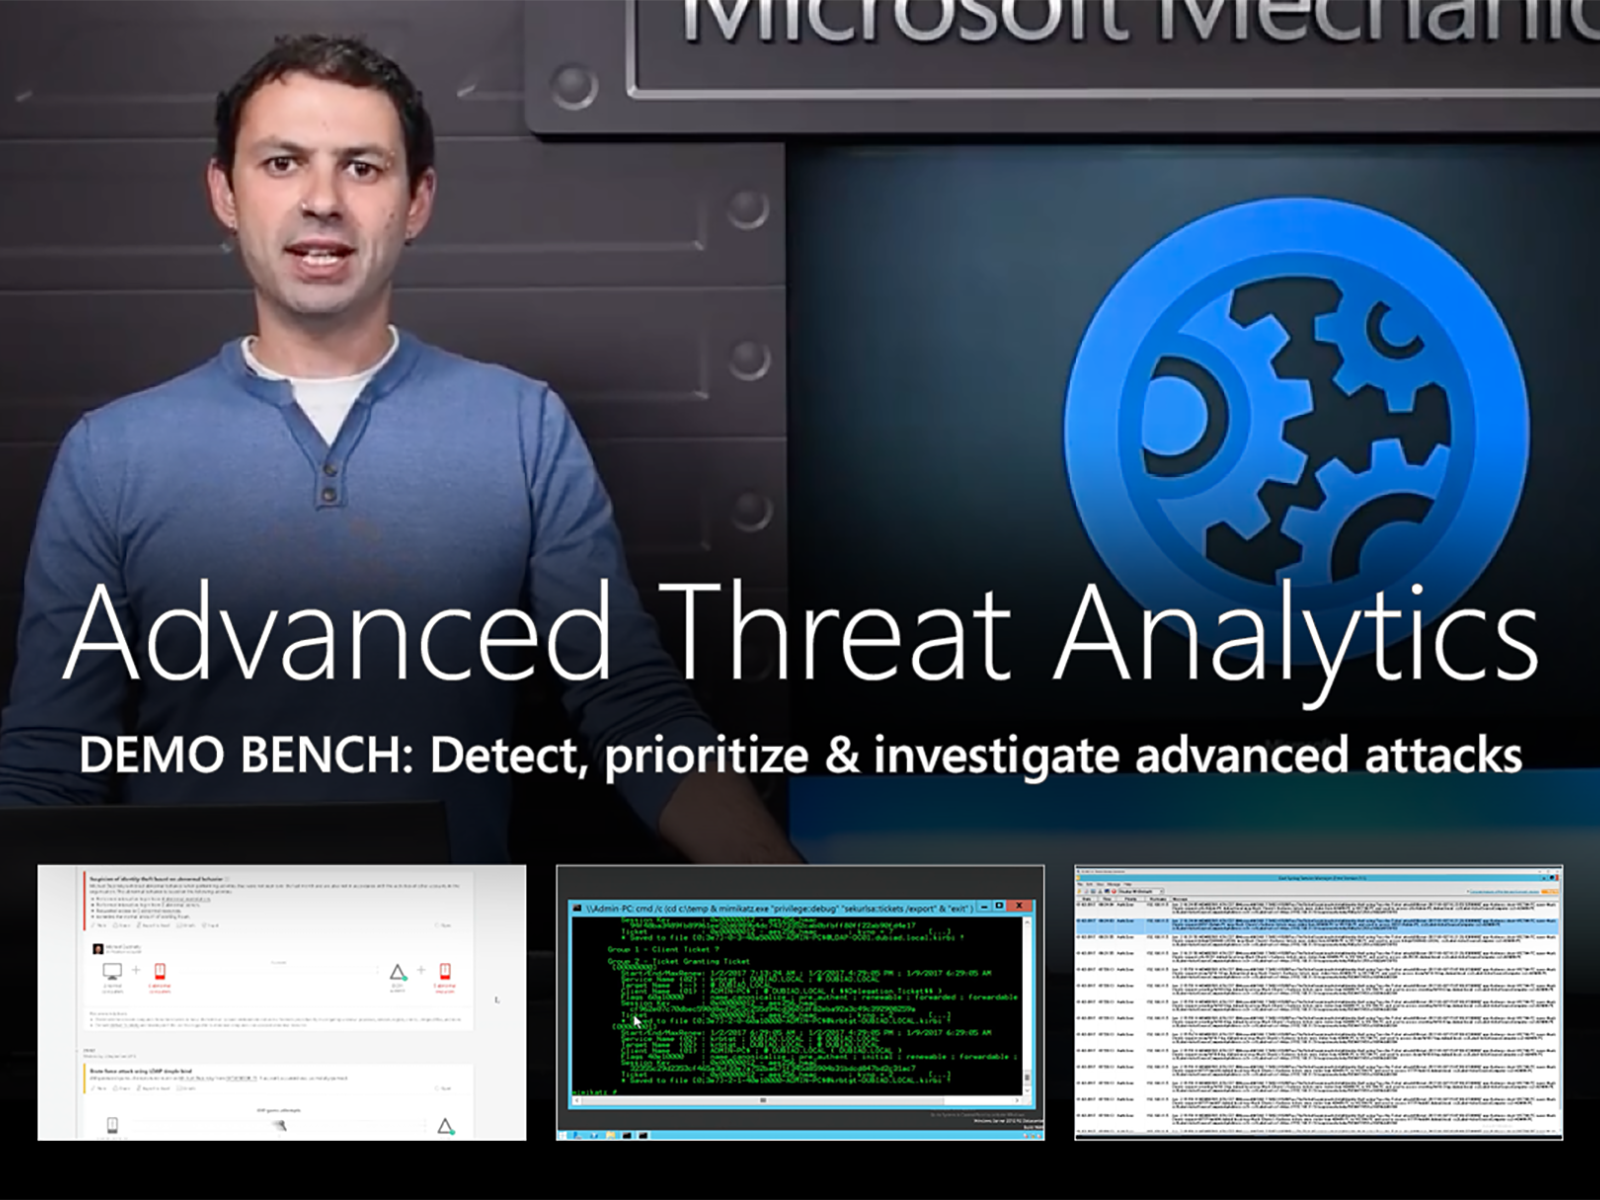 Artwork for Introducing Advanced Threat Analytics for your datacenter